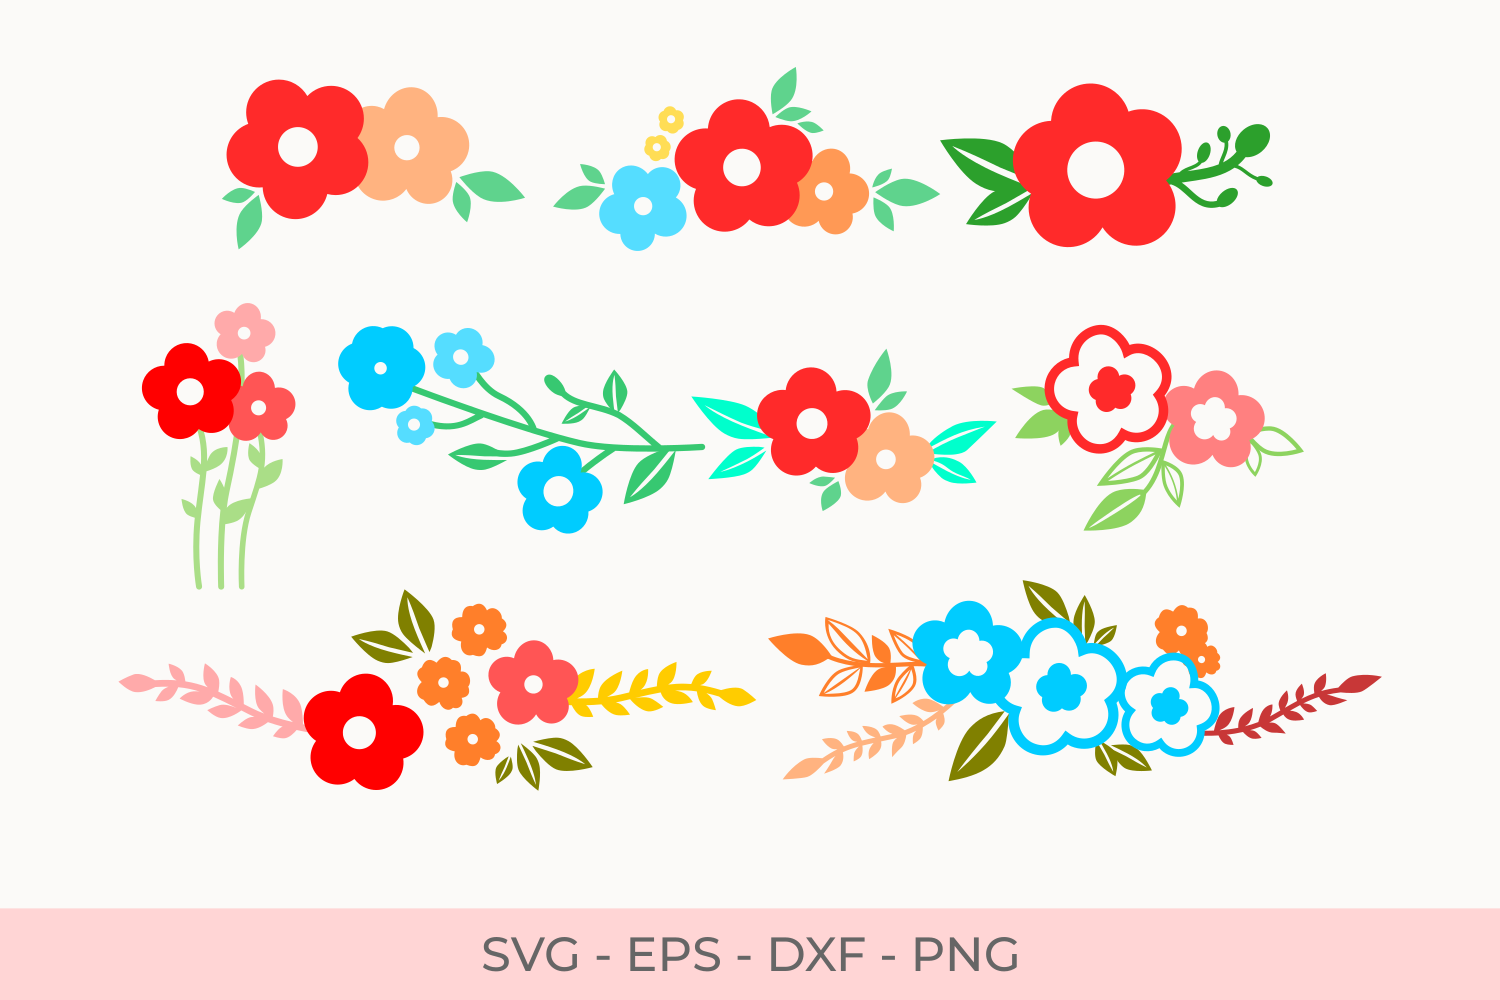 Download Free 559067 Graficos for Cricut Explore, Silhouette and other cutting machines.